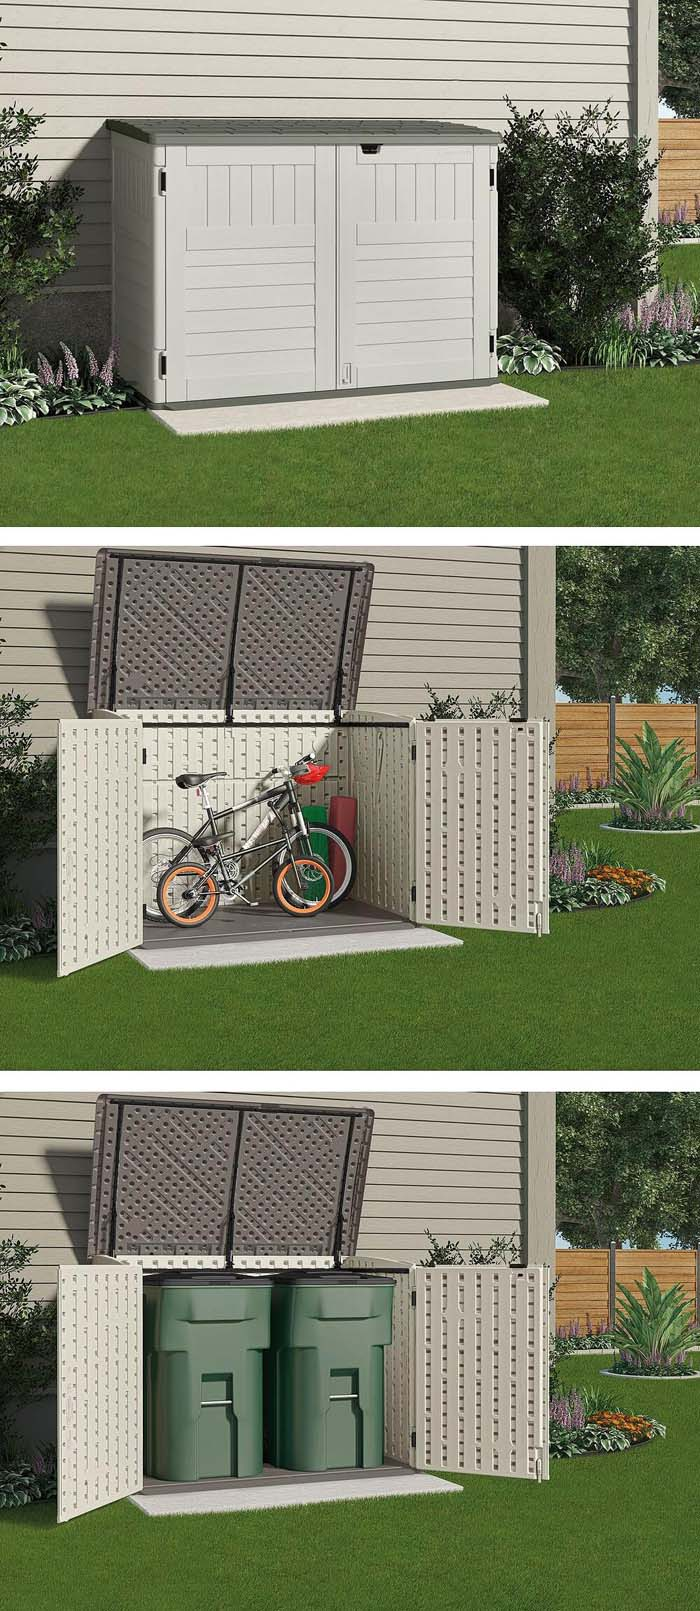 Covered, Two-Door Bike and Trash-Friendly Storage Unit #shed #garden #decorhomeideas